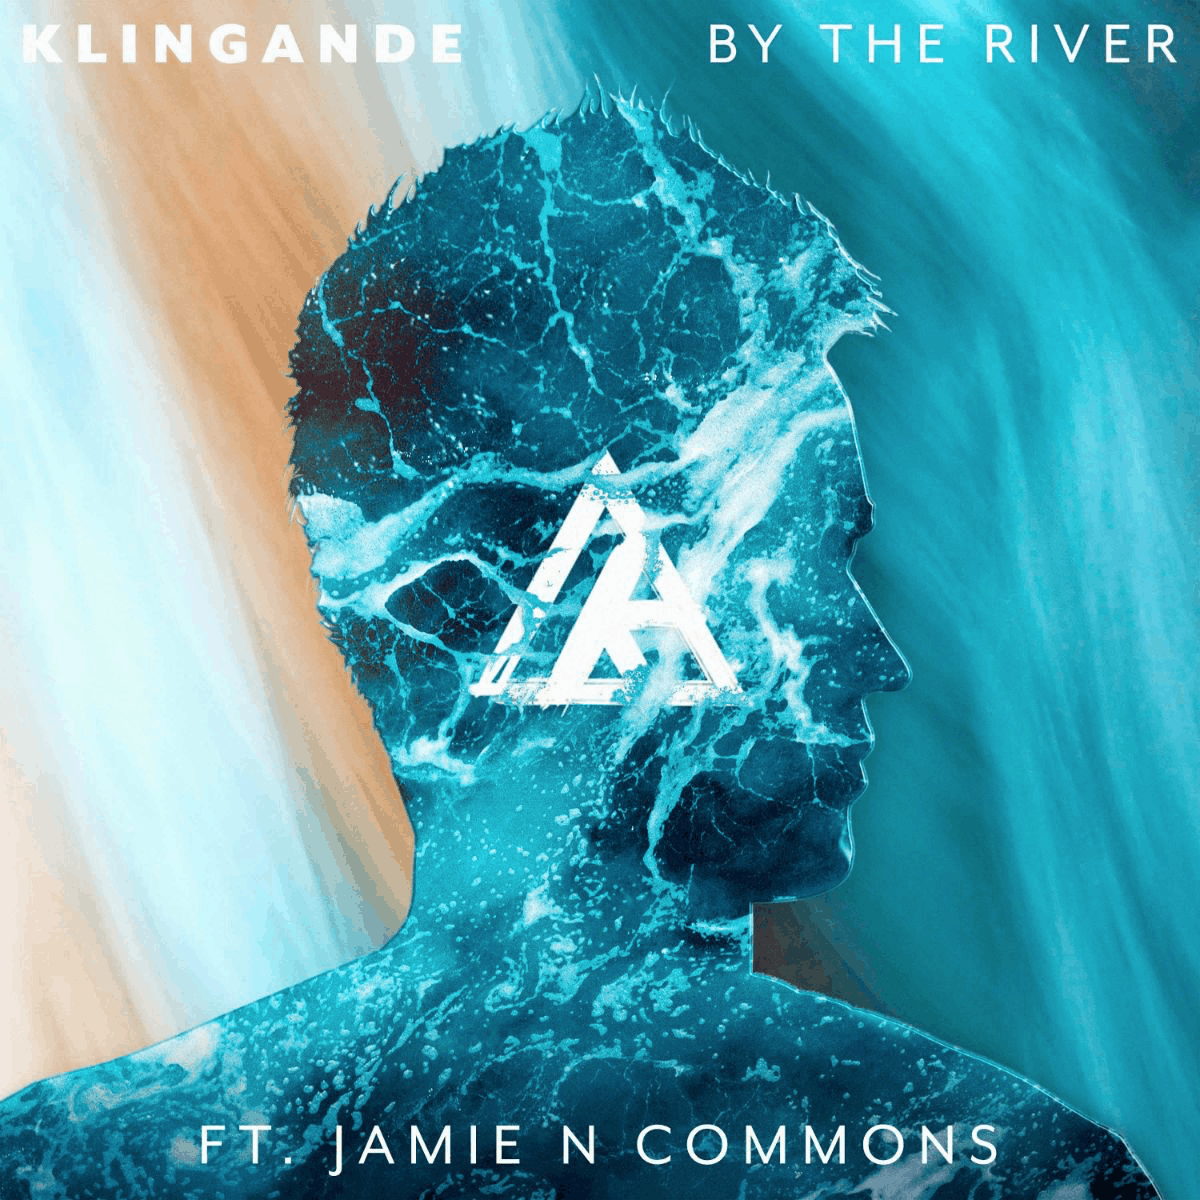 Klingande announces The Album and releases new single 'By The River'